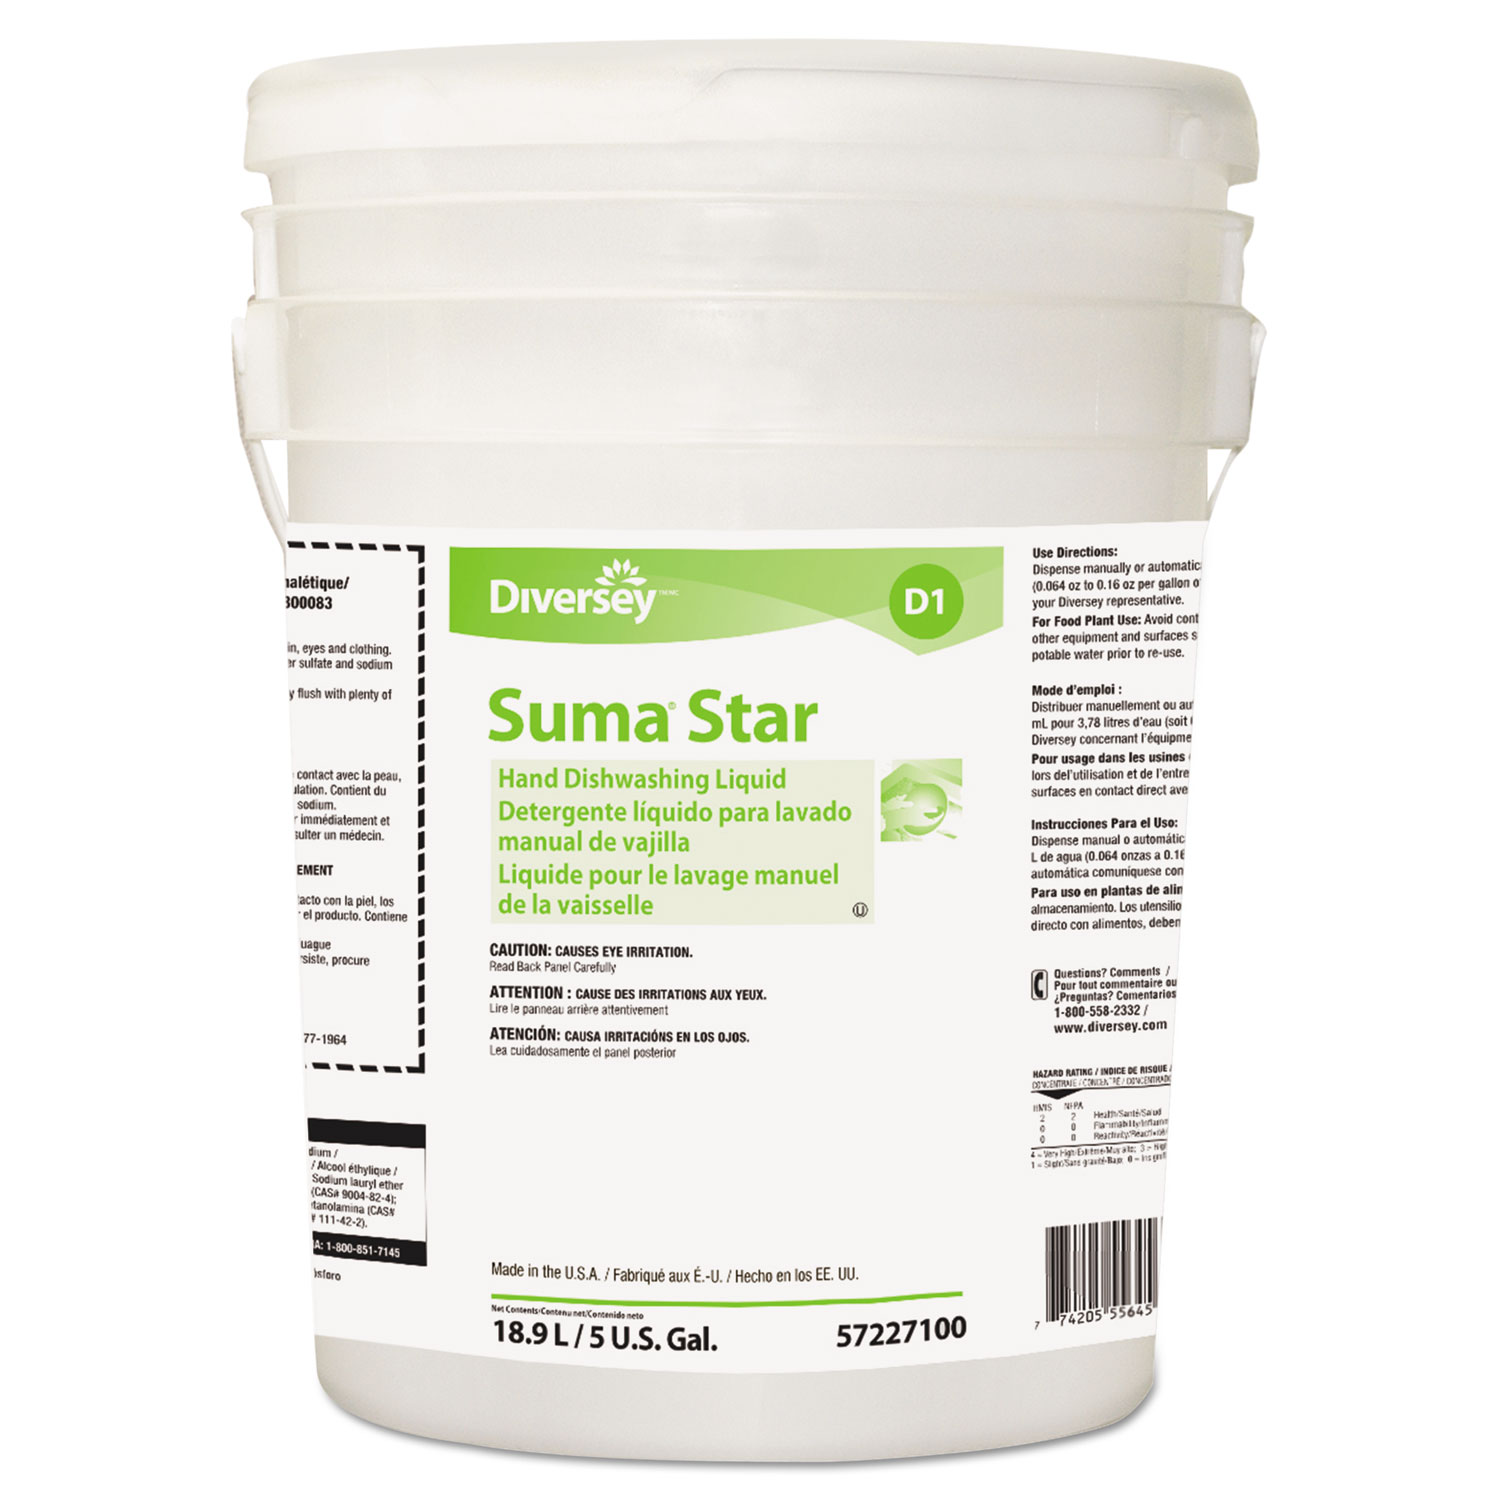 Suma Star D1 Hand Dishwashing Detergent, Unscented, 5 Gallon Pail